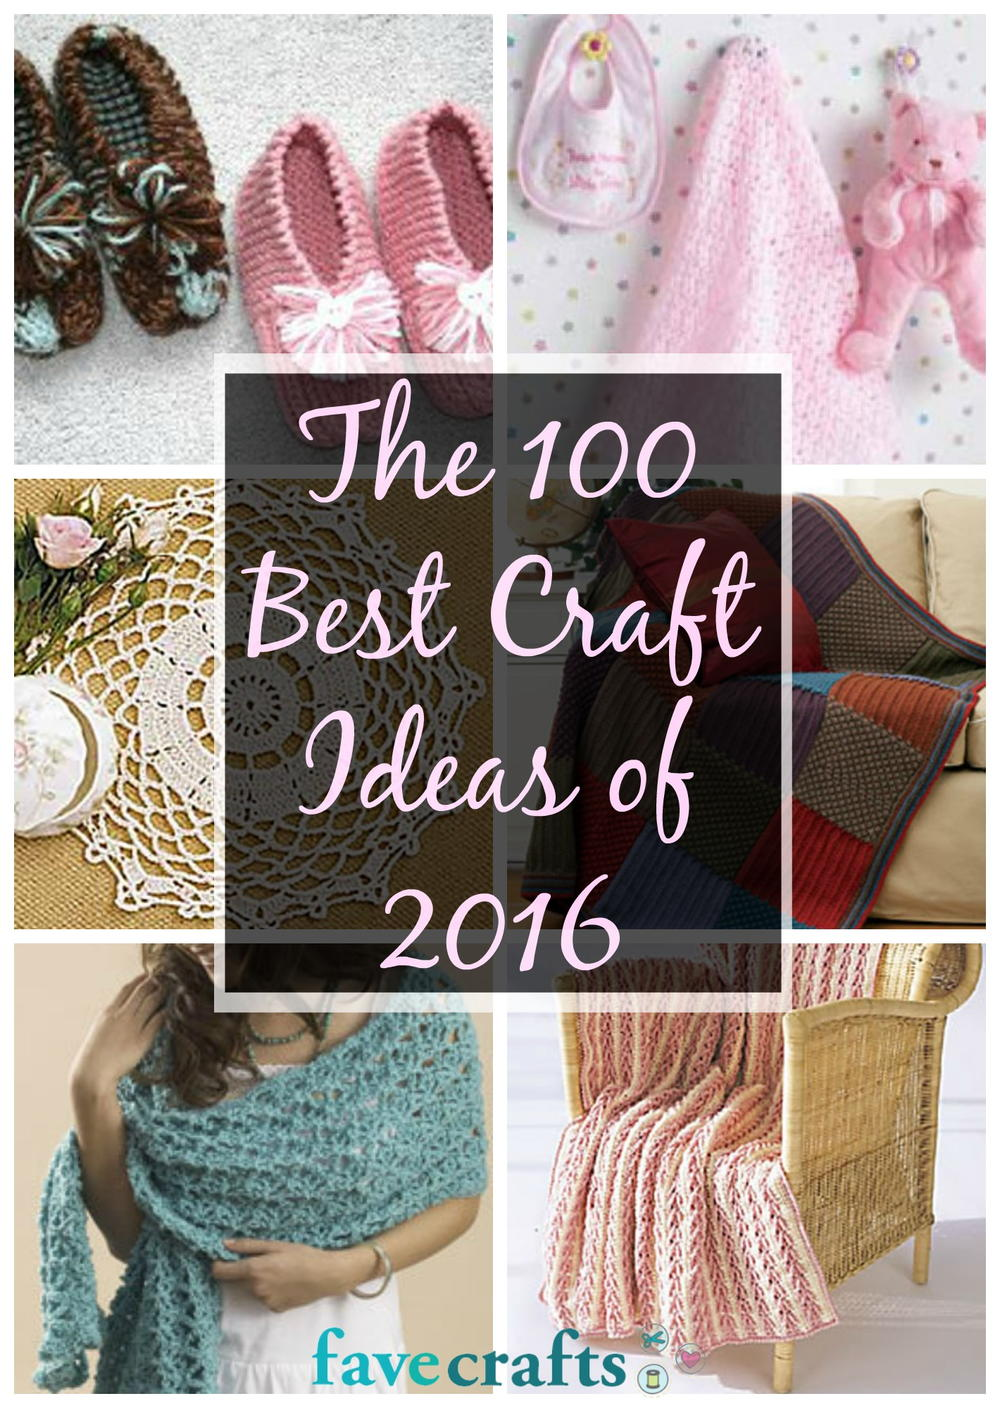 Christmas Crafts, Free Knitting Patterns, Free Crochet Patterns and ...